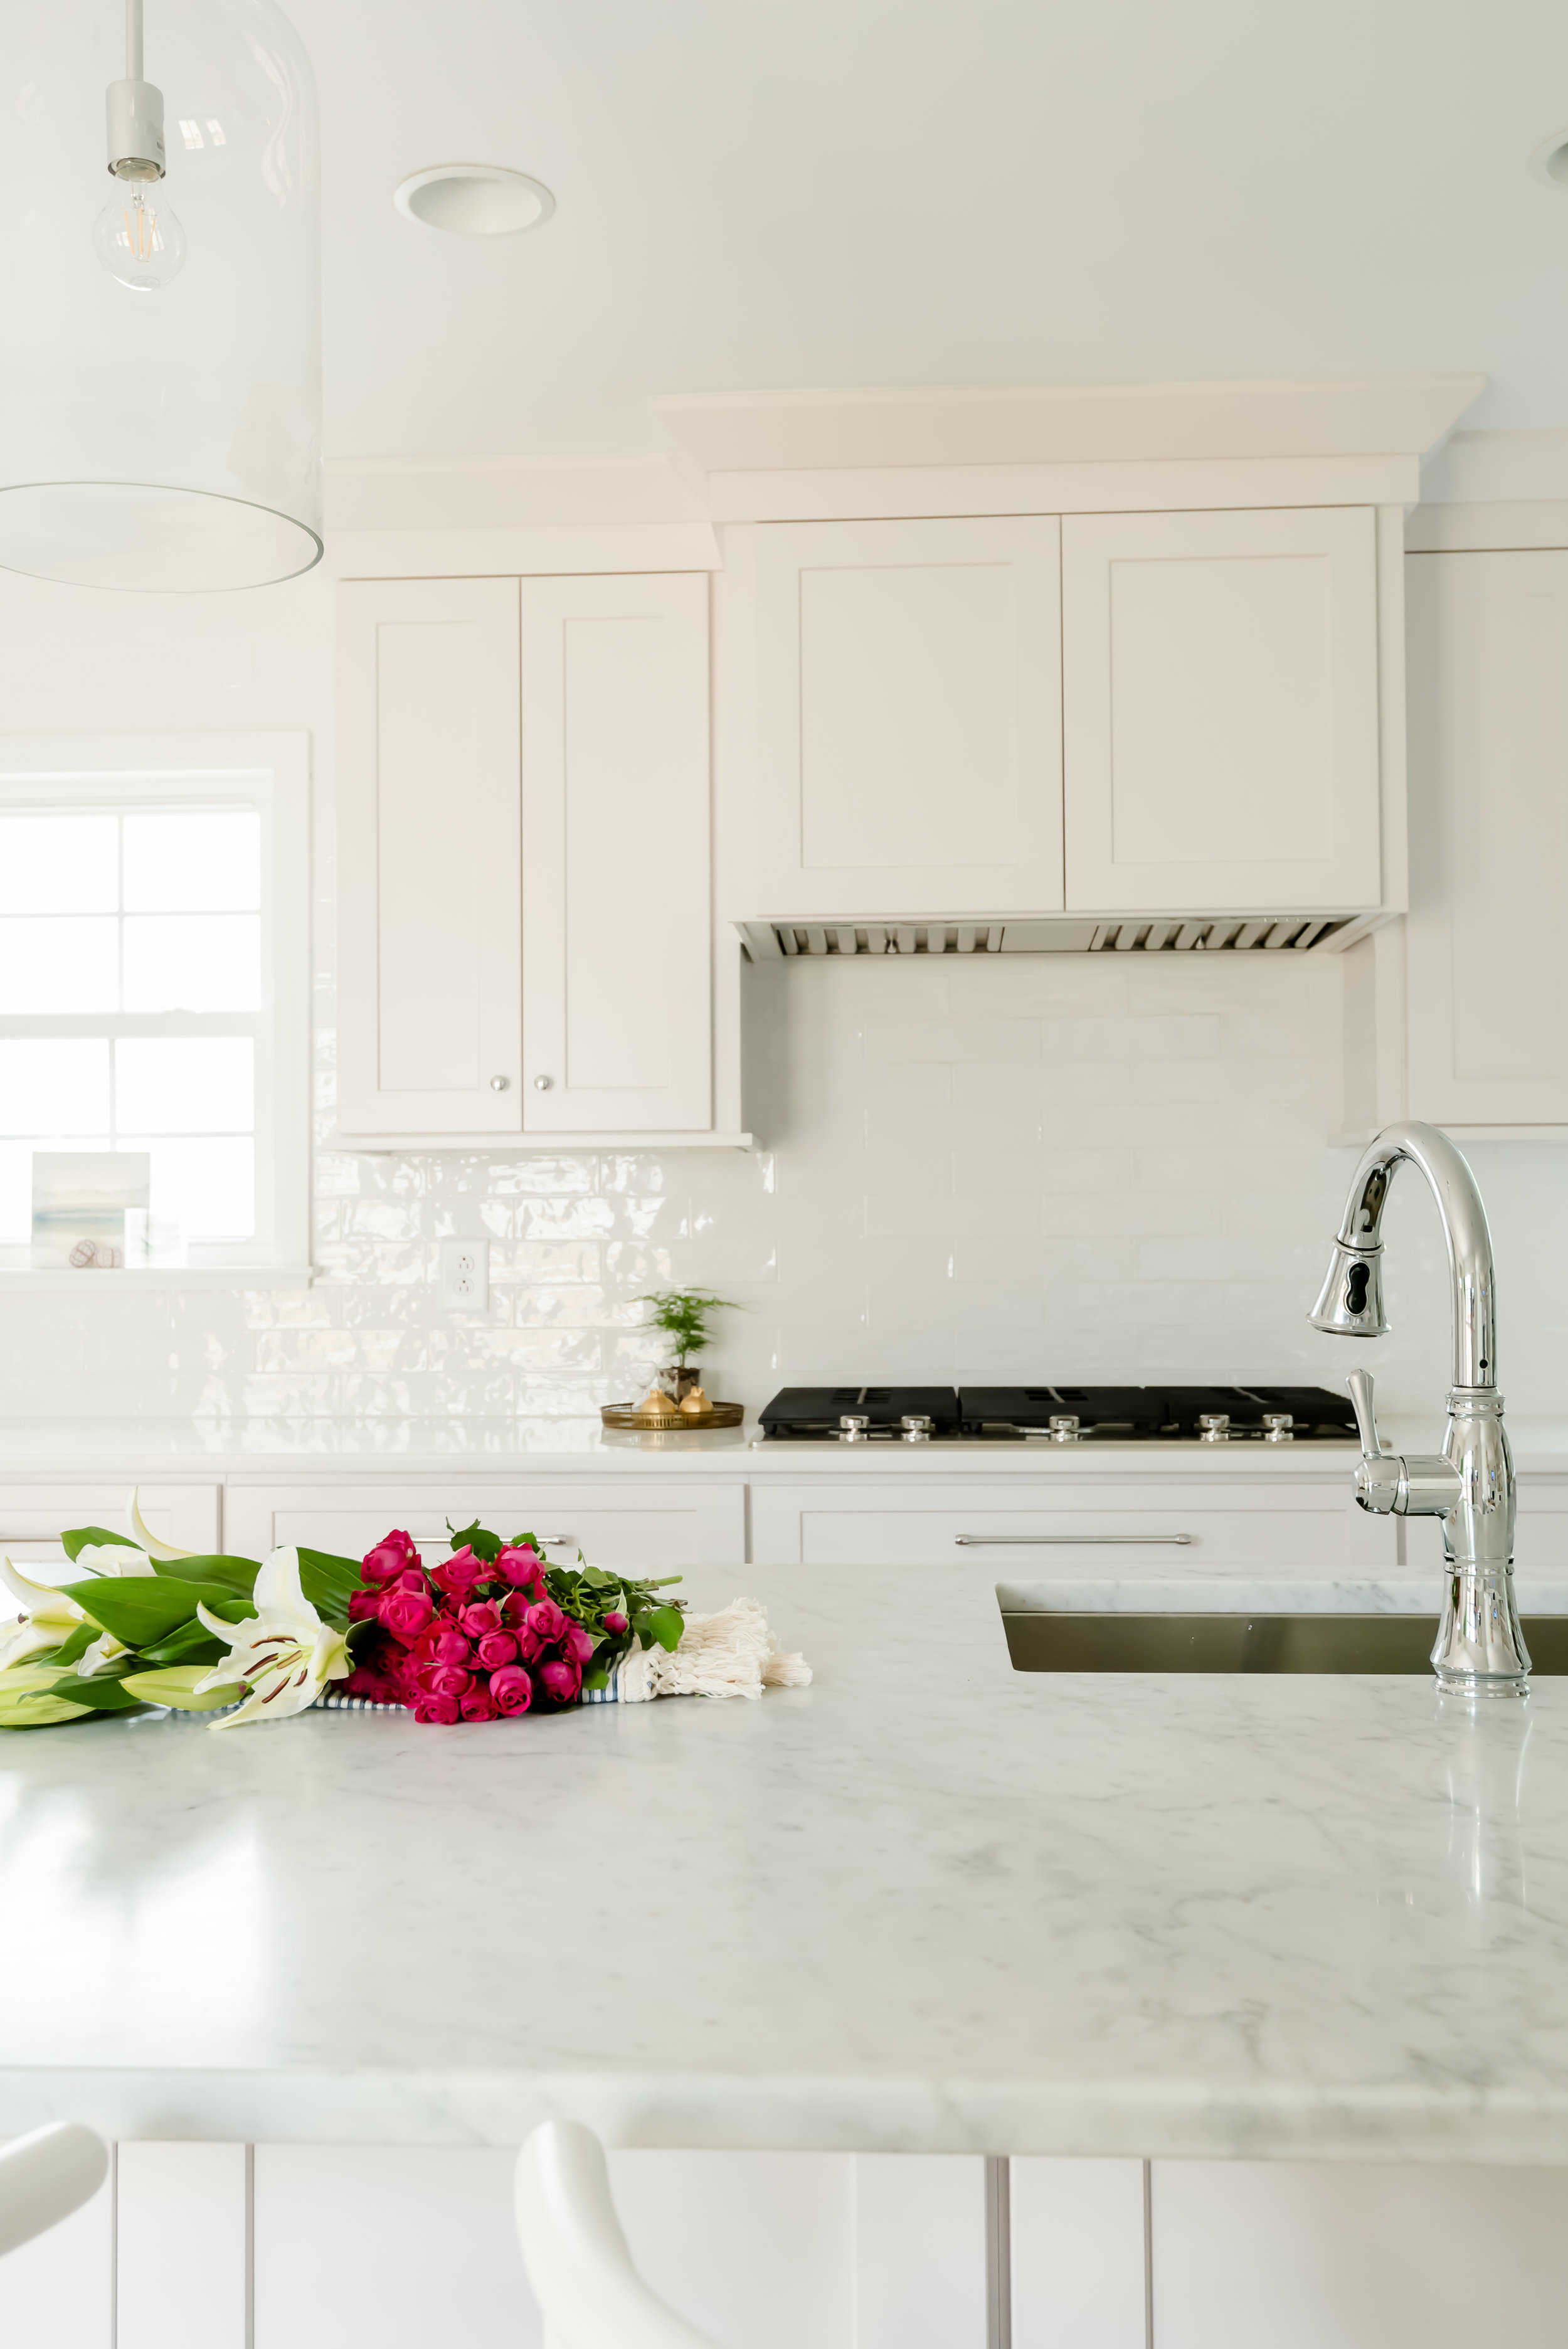 carrara marble was used for the island countertops and we used a quartz (caesarstone in blizzard) for the rest of the countertops.